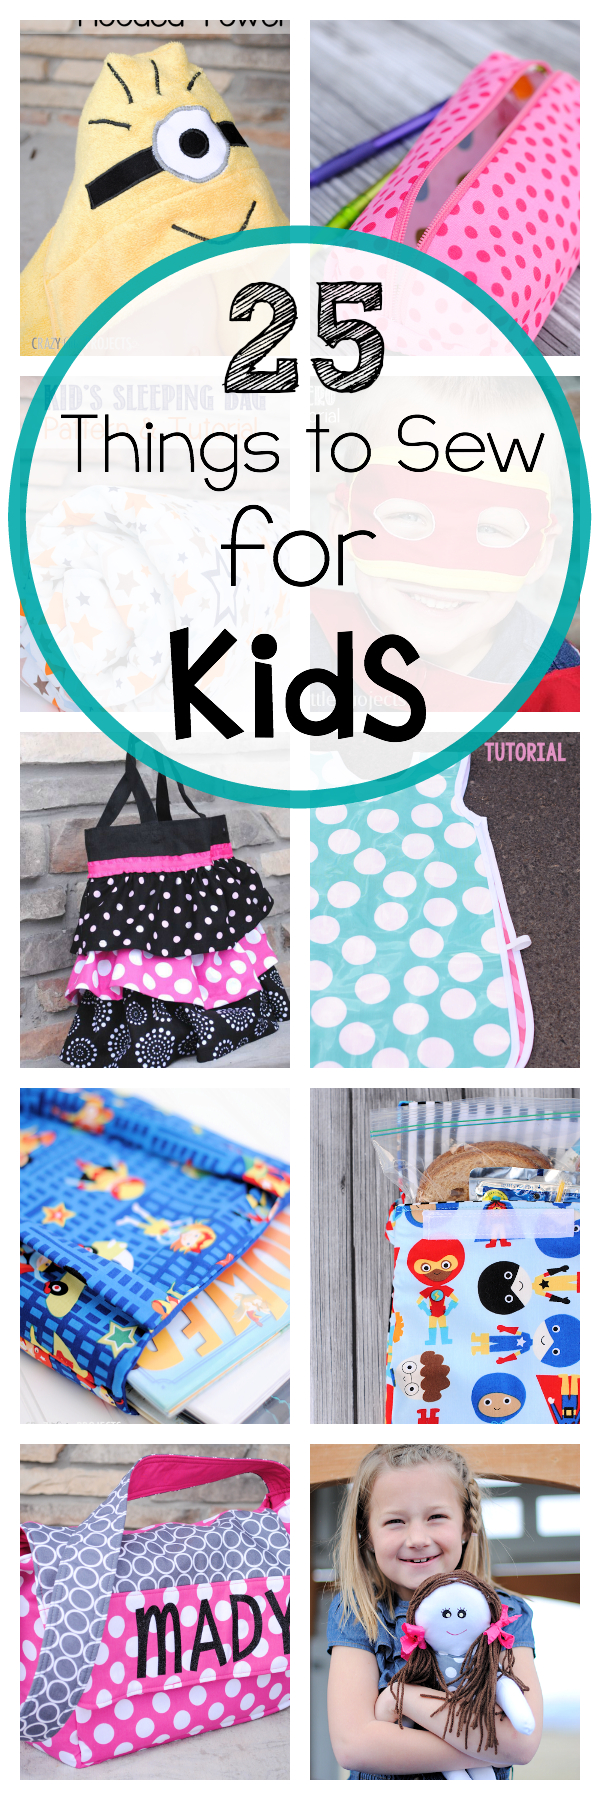 25 Sewing Patterns for Kids-So many cute and easy things to sew for kids. You're going to love them! #sew #sewing #patterns #pattern #kids